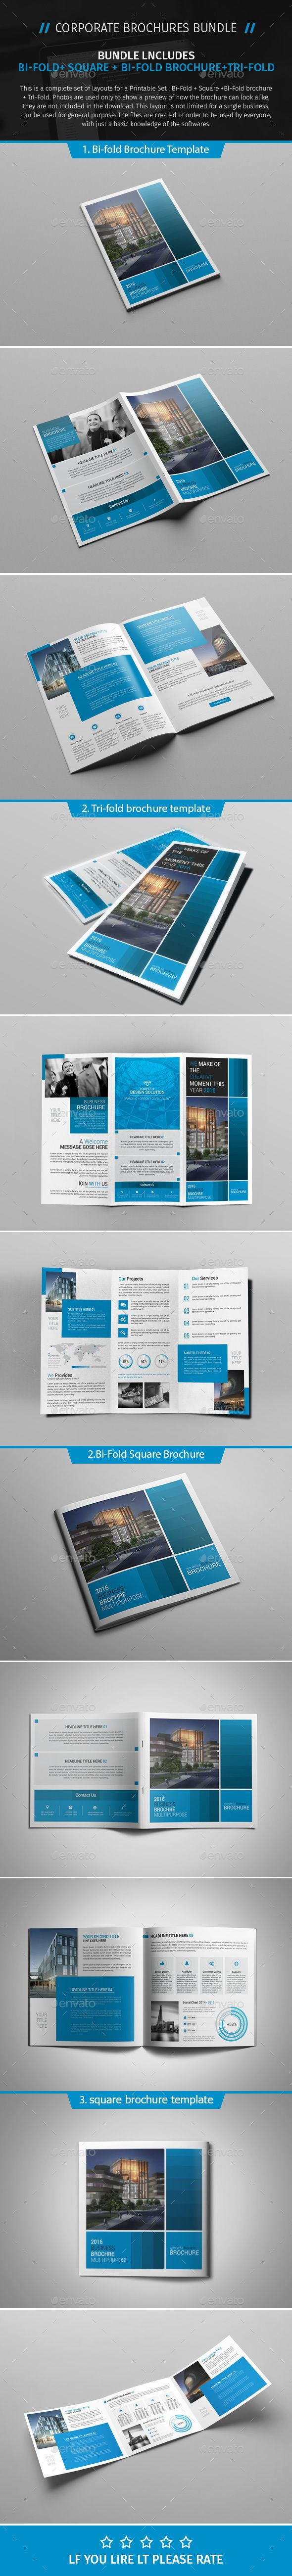 Brochure Bundle 05  — PSD Template #ad #clean • Download ➝ https://graphicriver.net/item/brochure-bundle-05/18200877?ref=pxcr